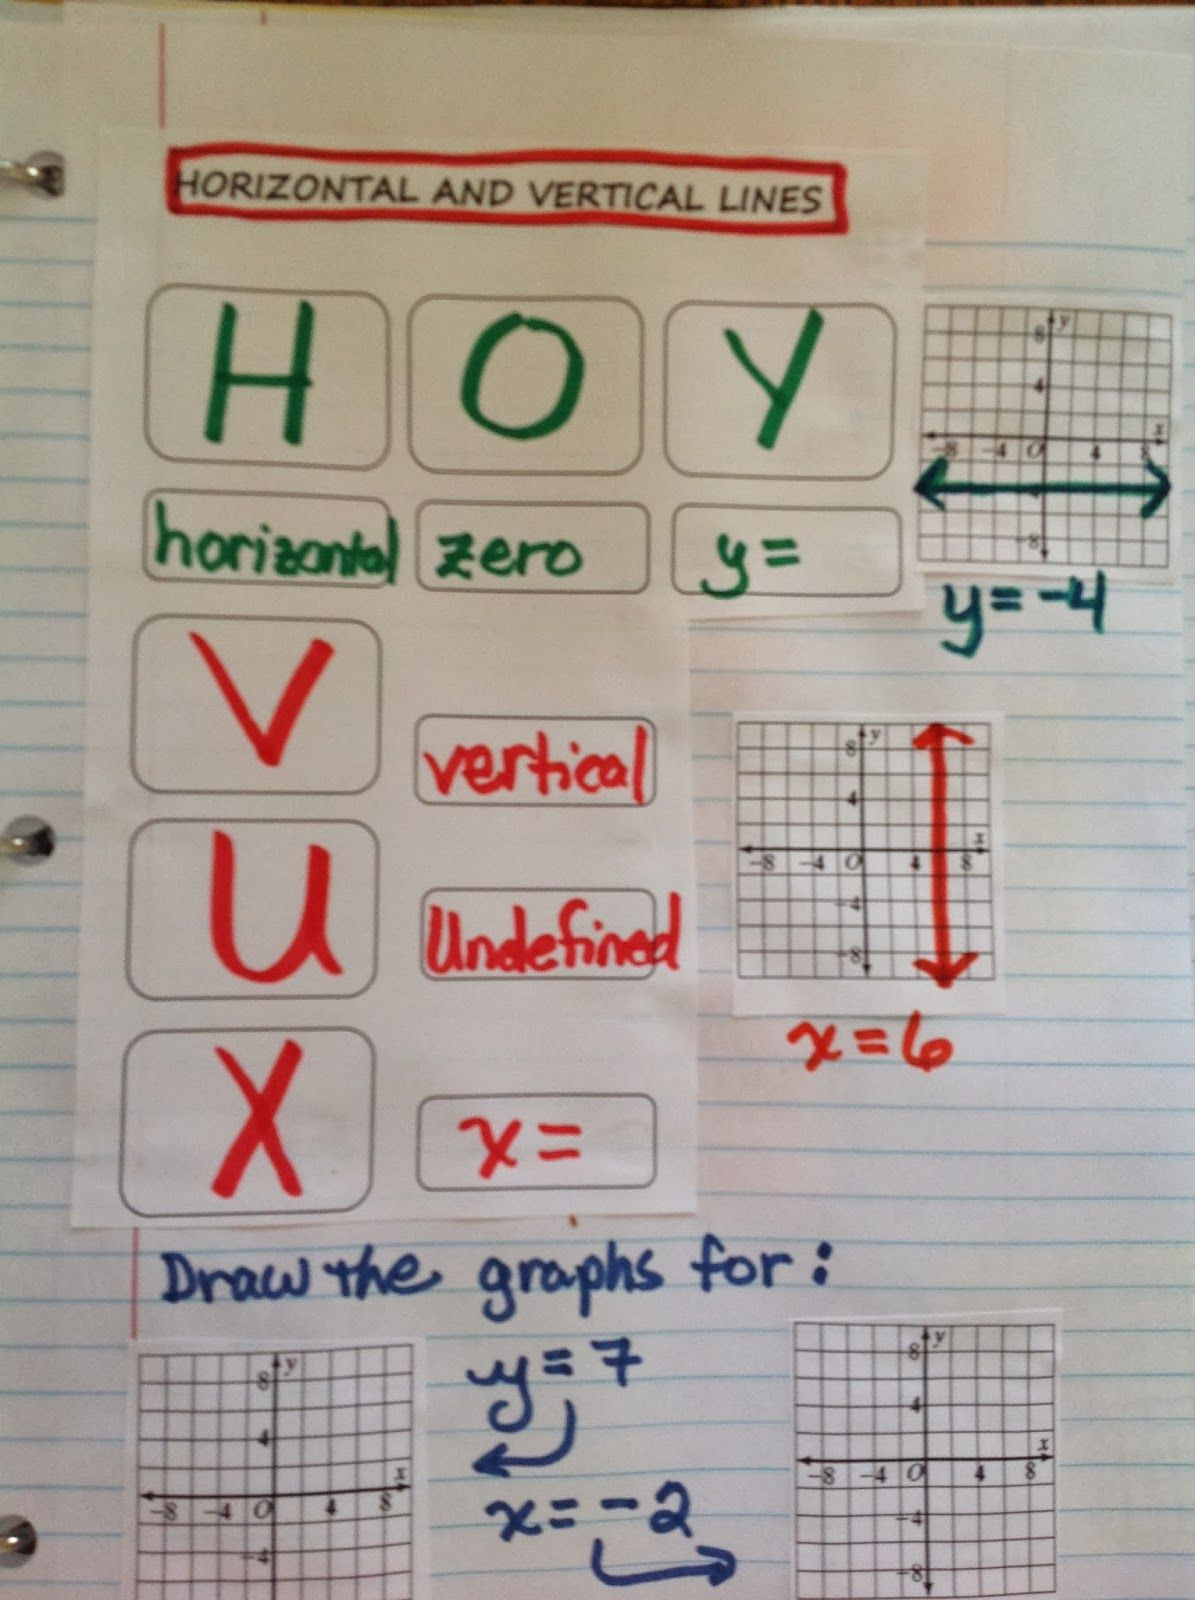 Equation Freak Graphing Horizontal And Vertical Lines Hoy And Vux